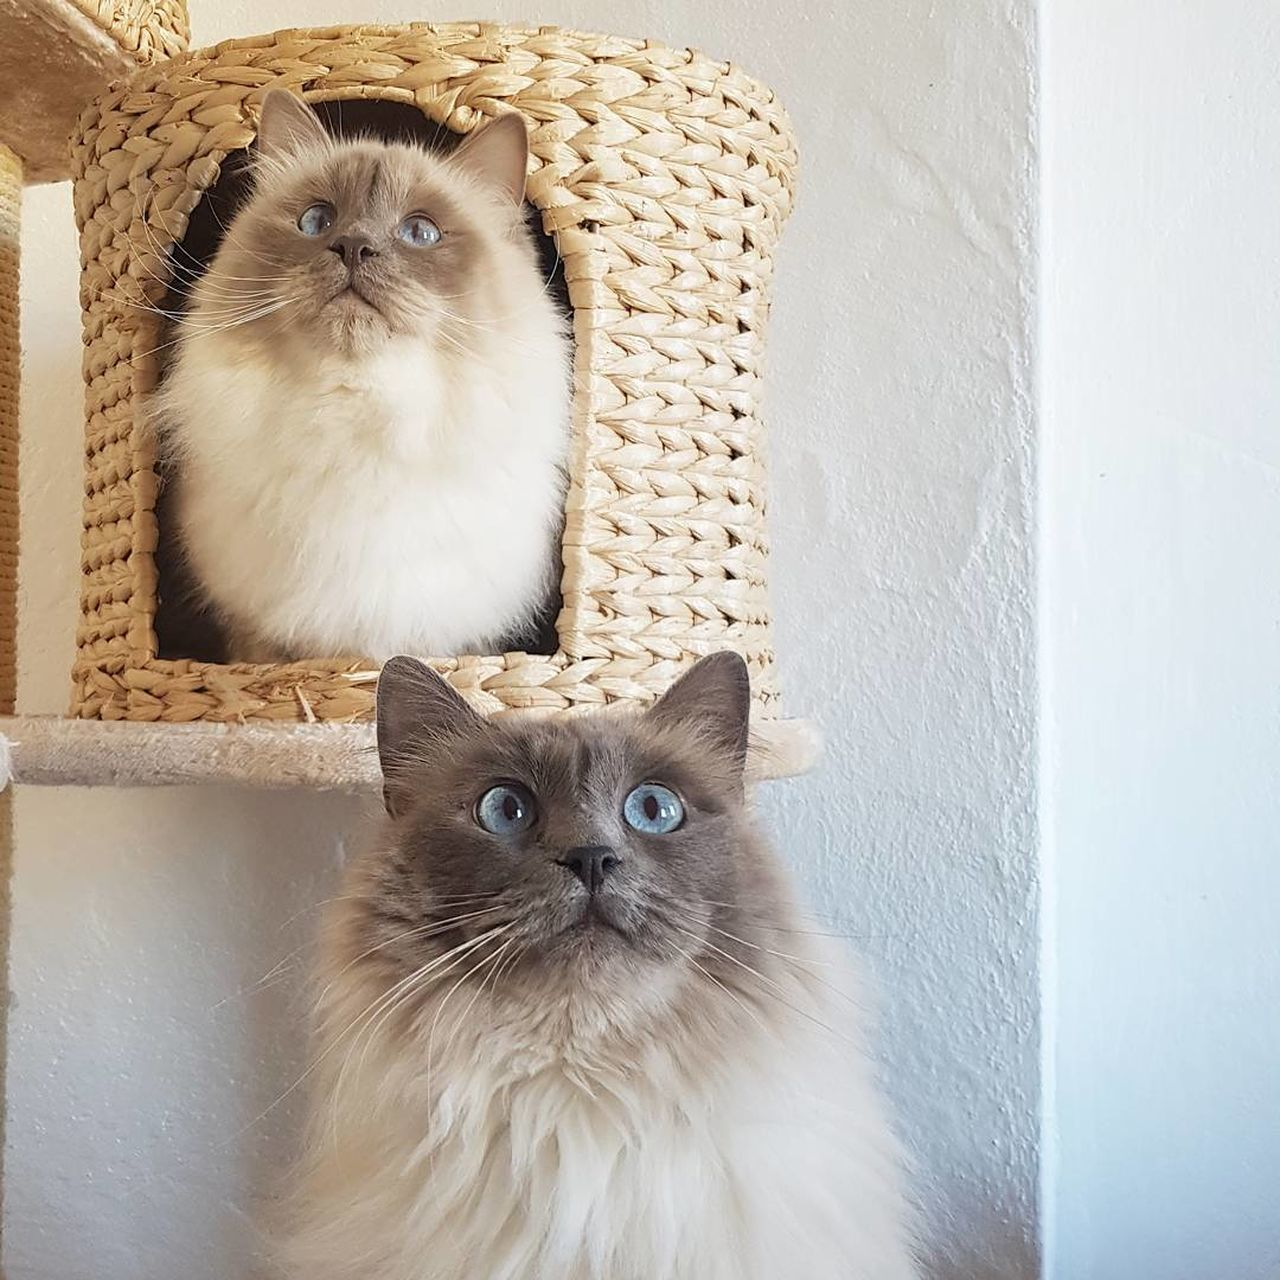 Cat Looking At Camera Birman  Kitten Animal Whisker Domestic Cat Pets Close-up Katze First Eyeem Photo